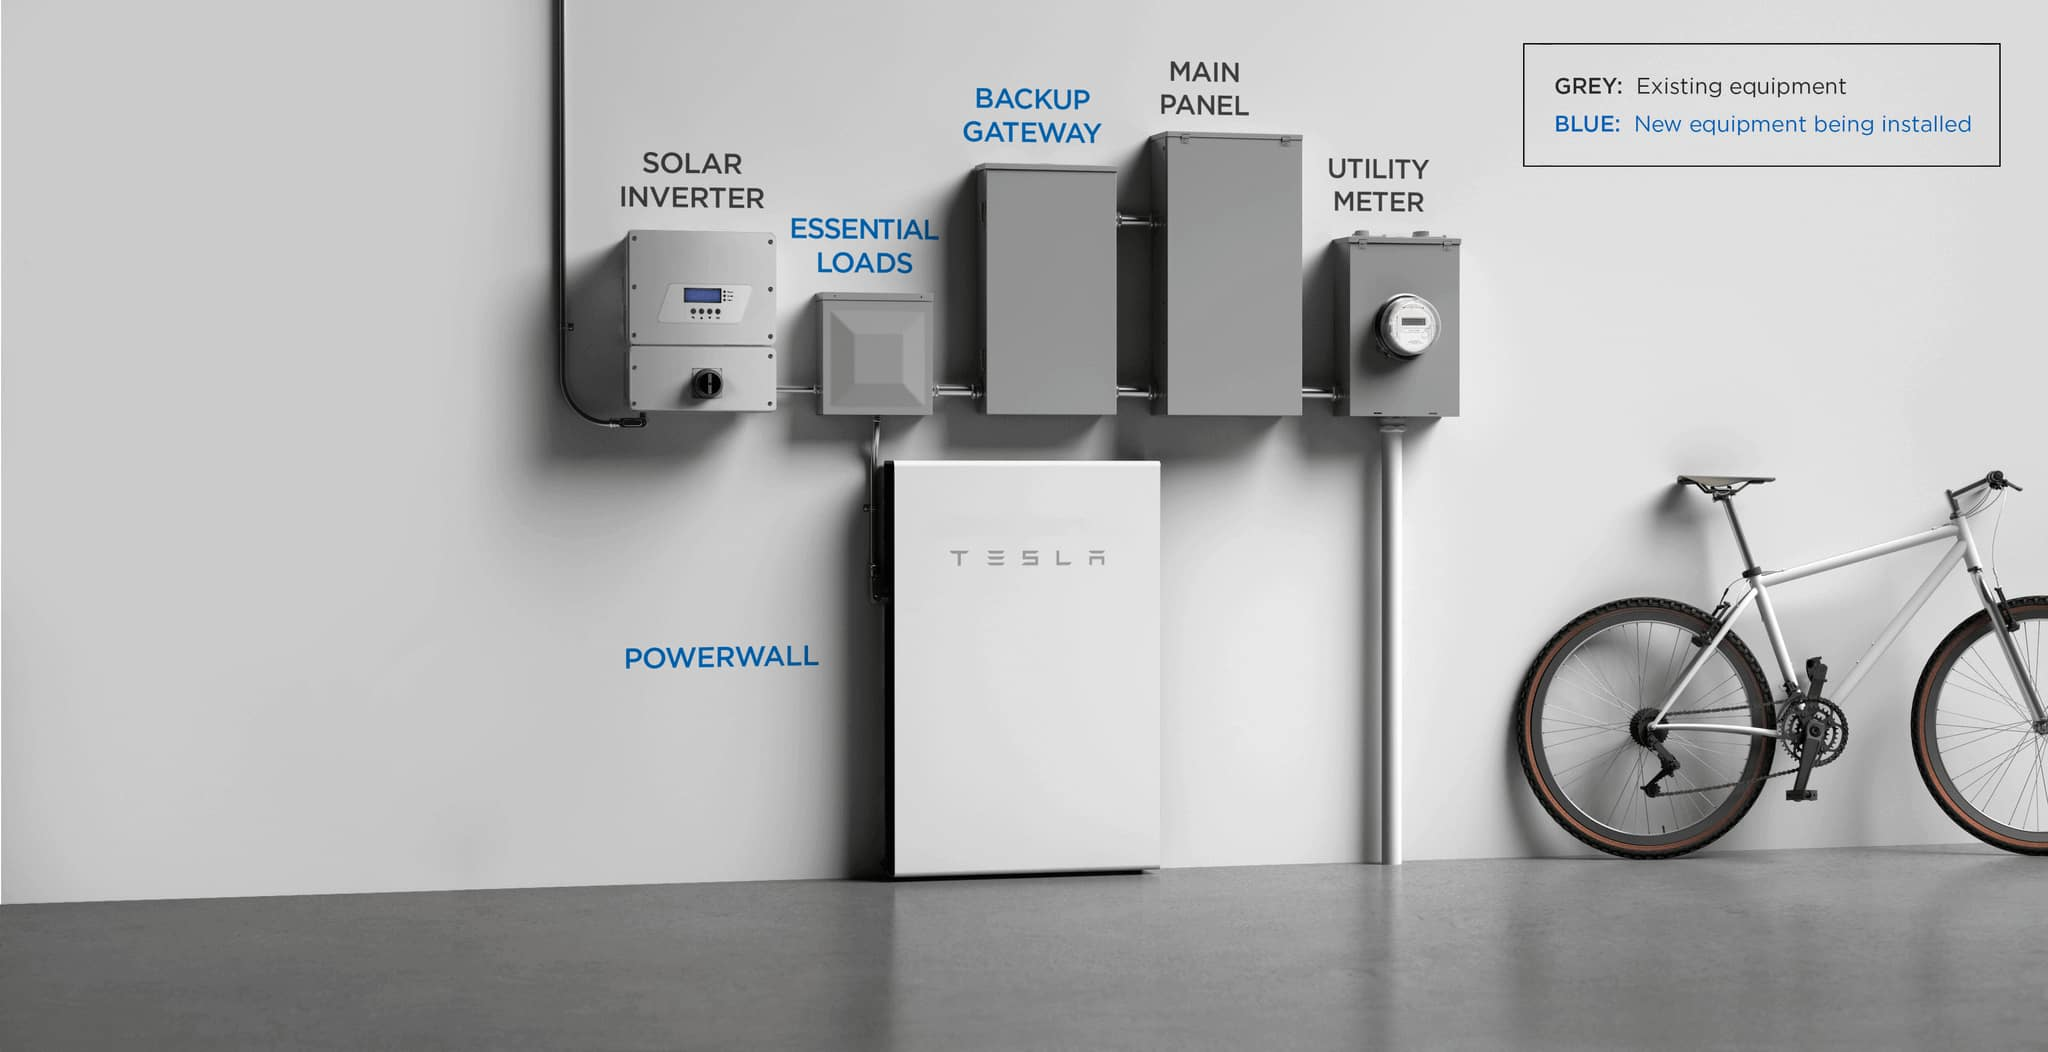 Powerwall on hardware setup diagram